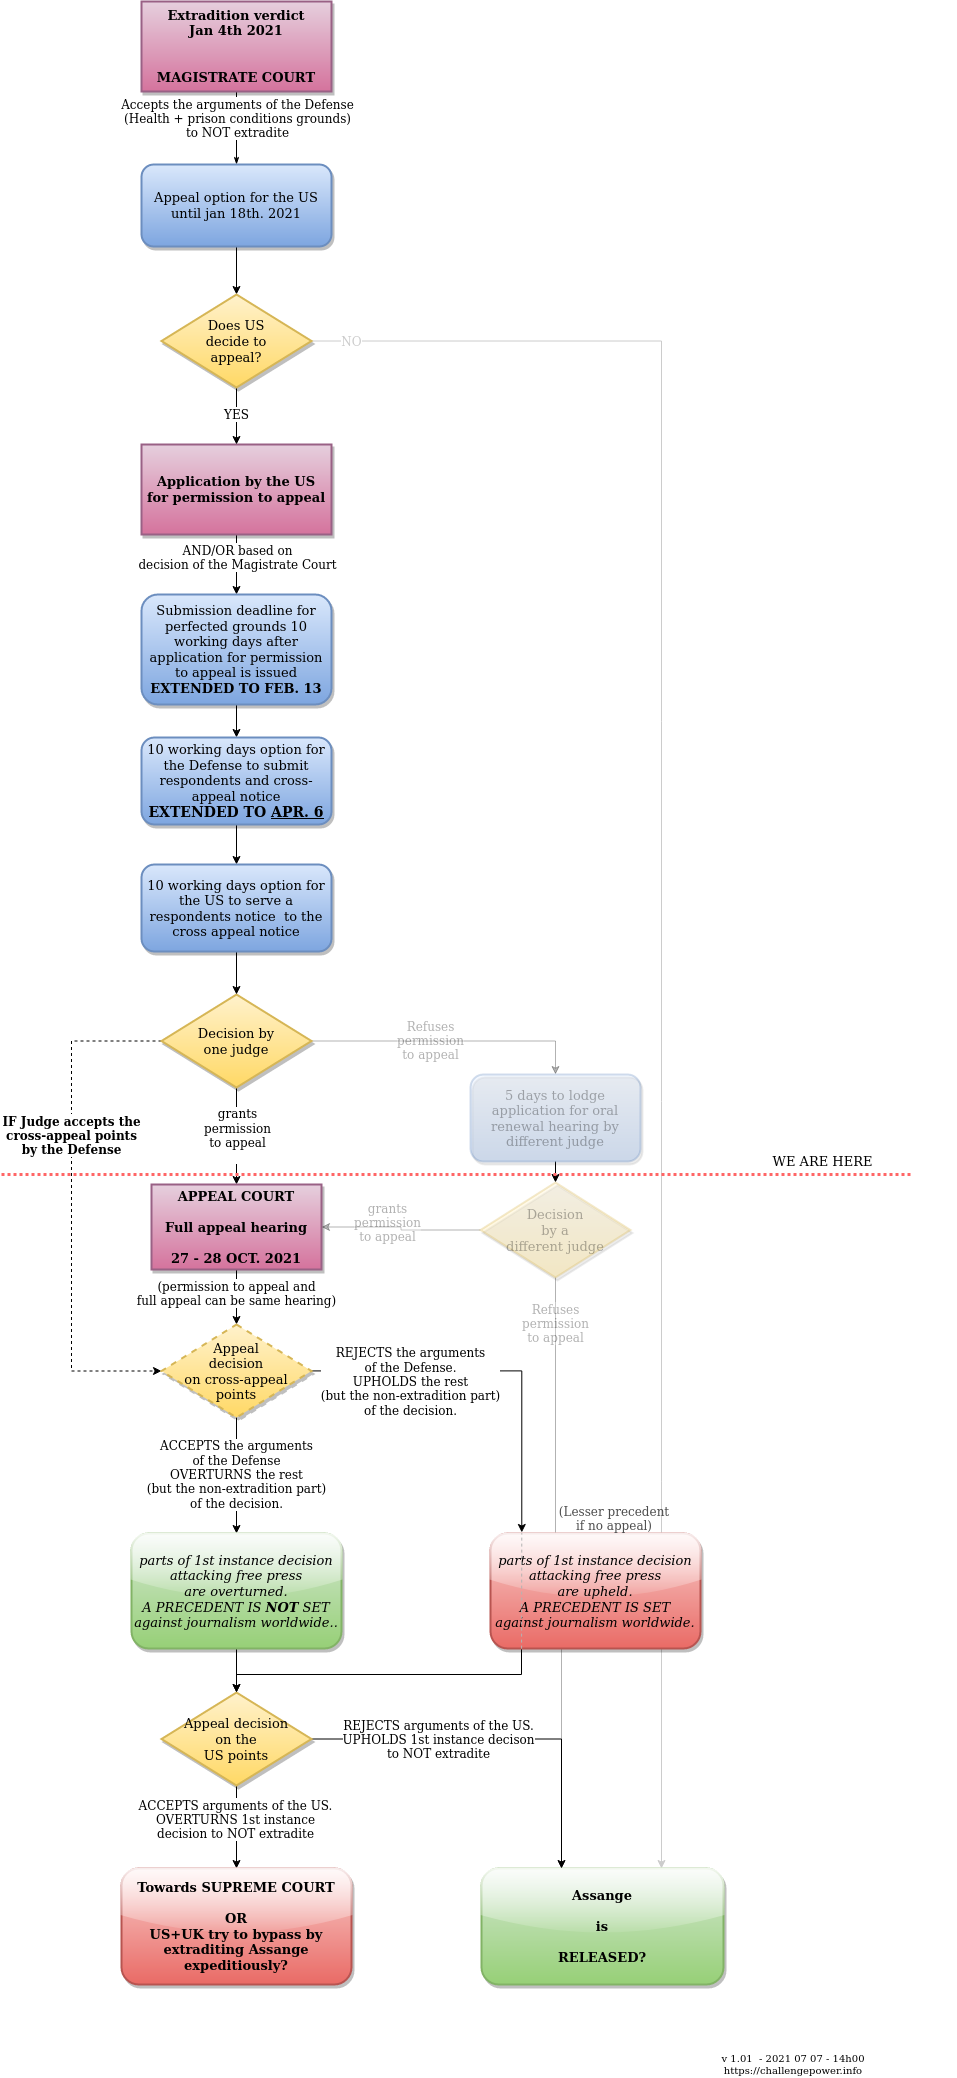 2021-01:next_steps_in_assange_extradition_procedure_after_jan_4th_first_instance_decision_20210812_1100.png